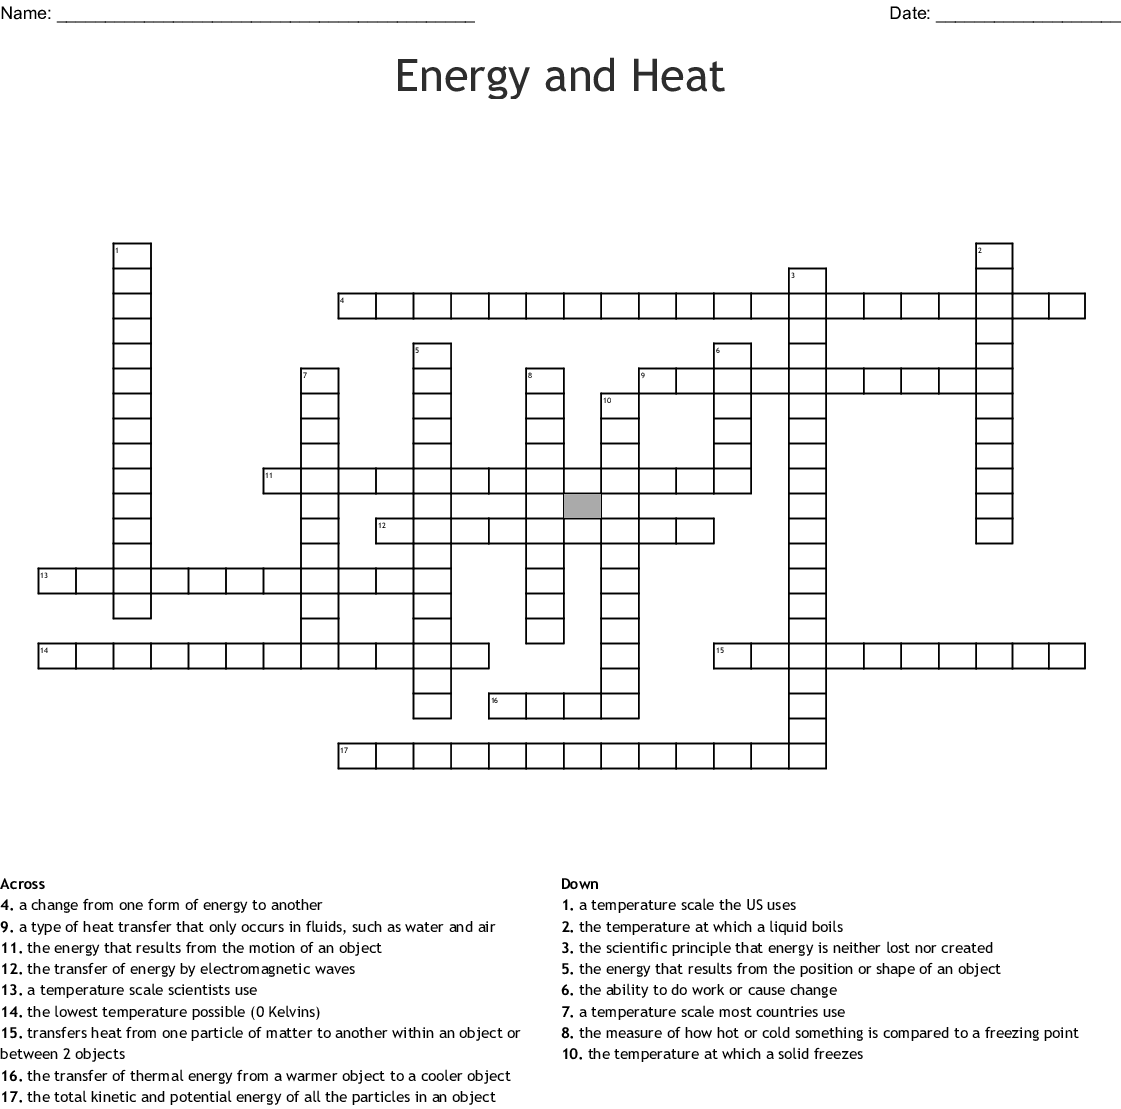 Heat And Energy Crossword